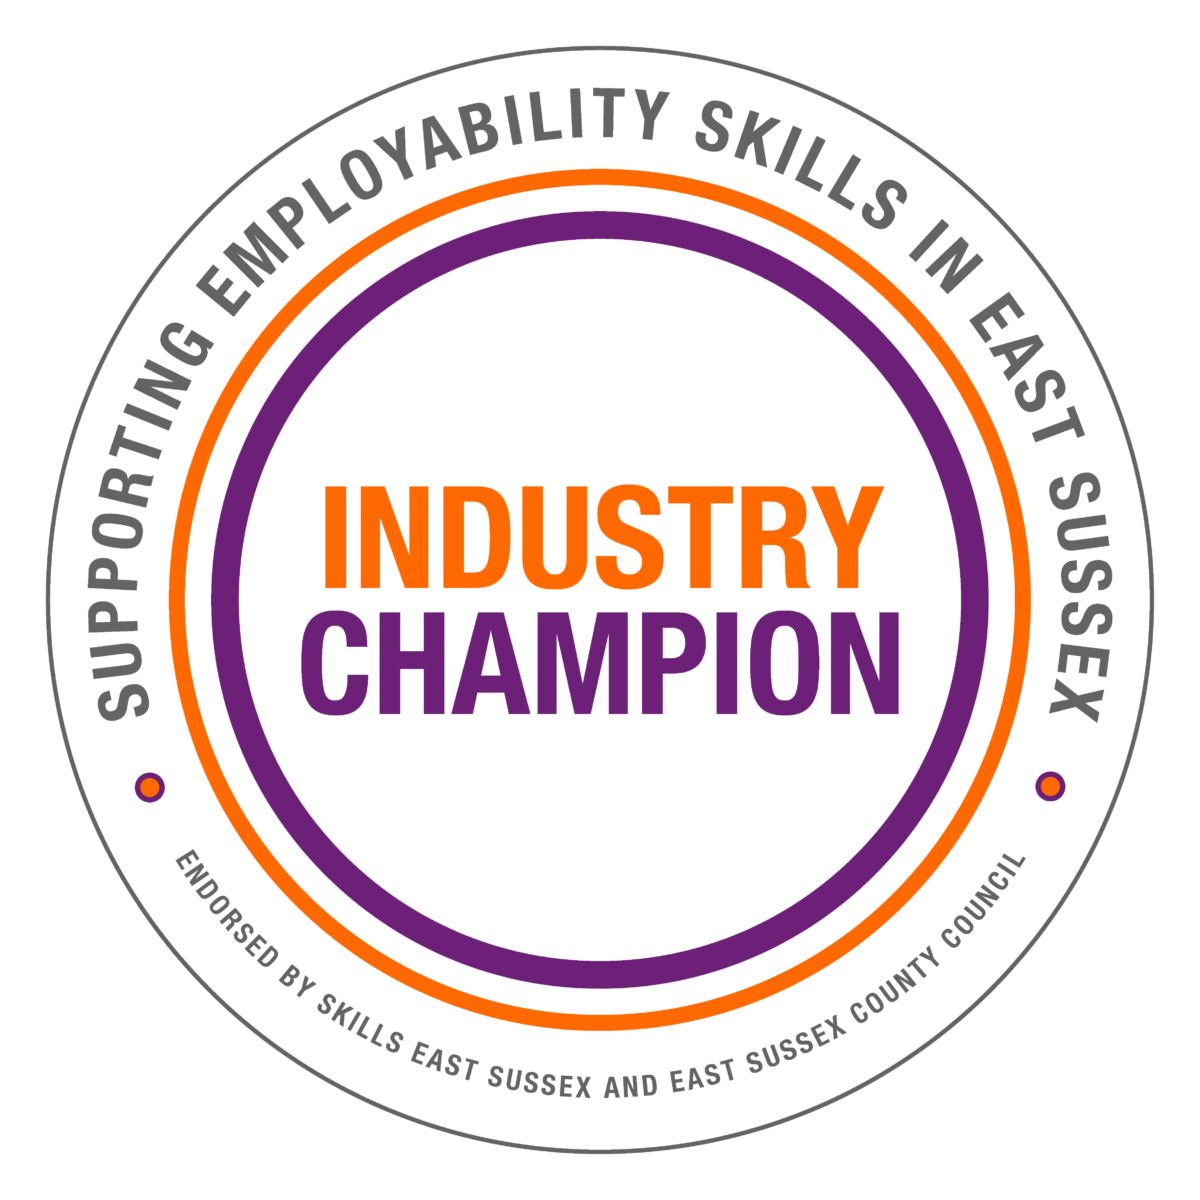 Industry-Champion-Master-Artwork-Colour-For-Web-and-MS-Software-1-1200x1200.png